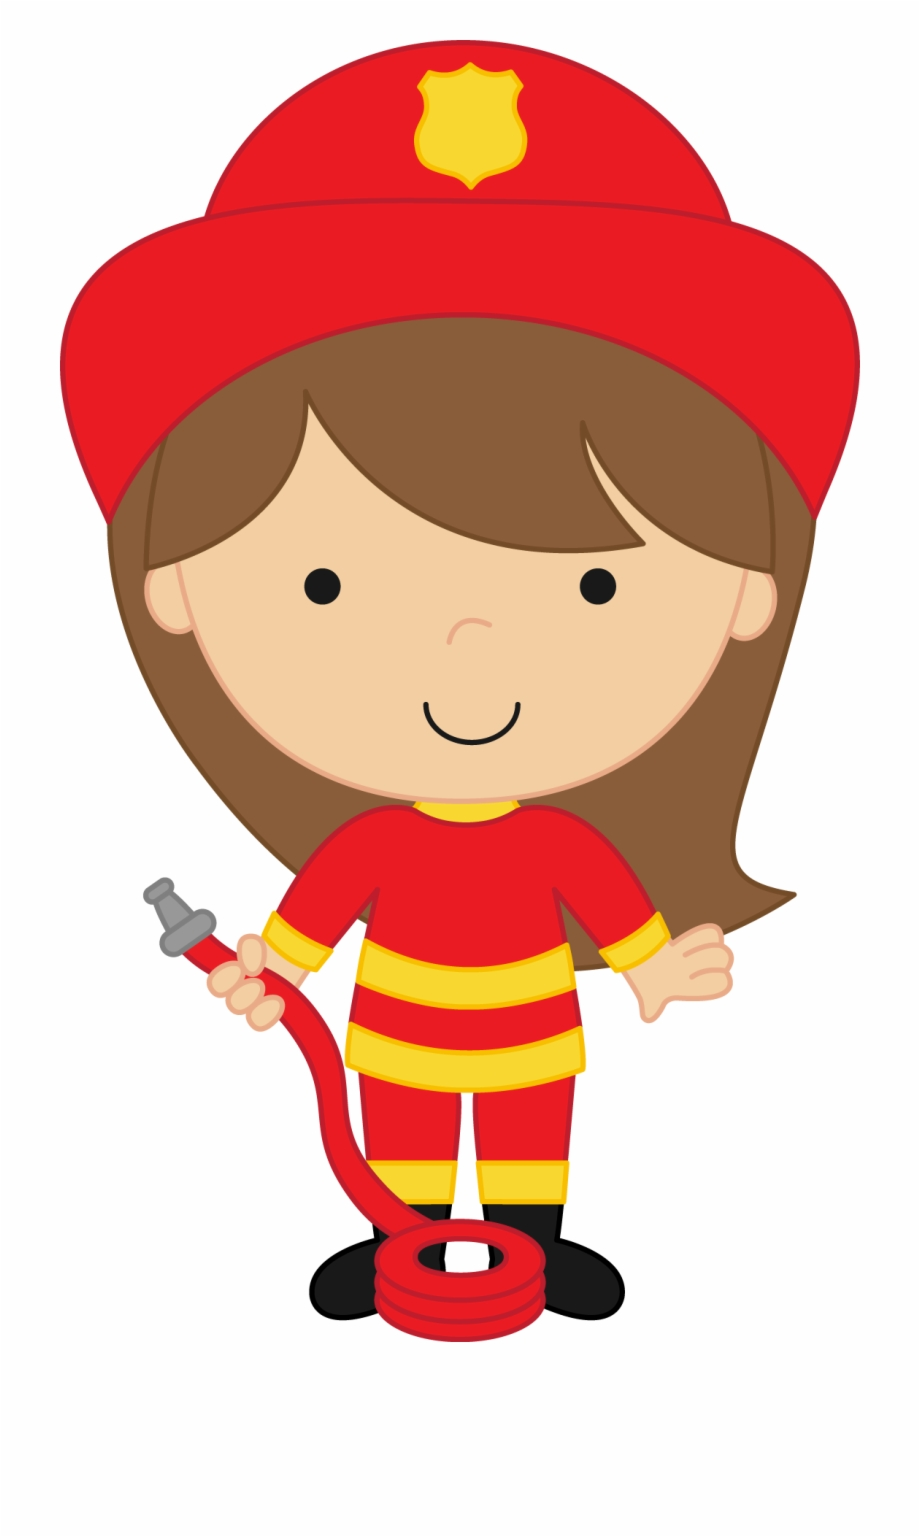 Girl firefighter clipart graphic black and white stock English Classes For Kids, Classroom Clipart, Fireman - Firefighter ... graphic black and white stock